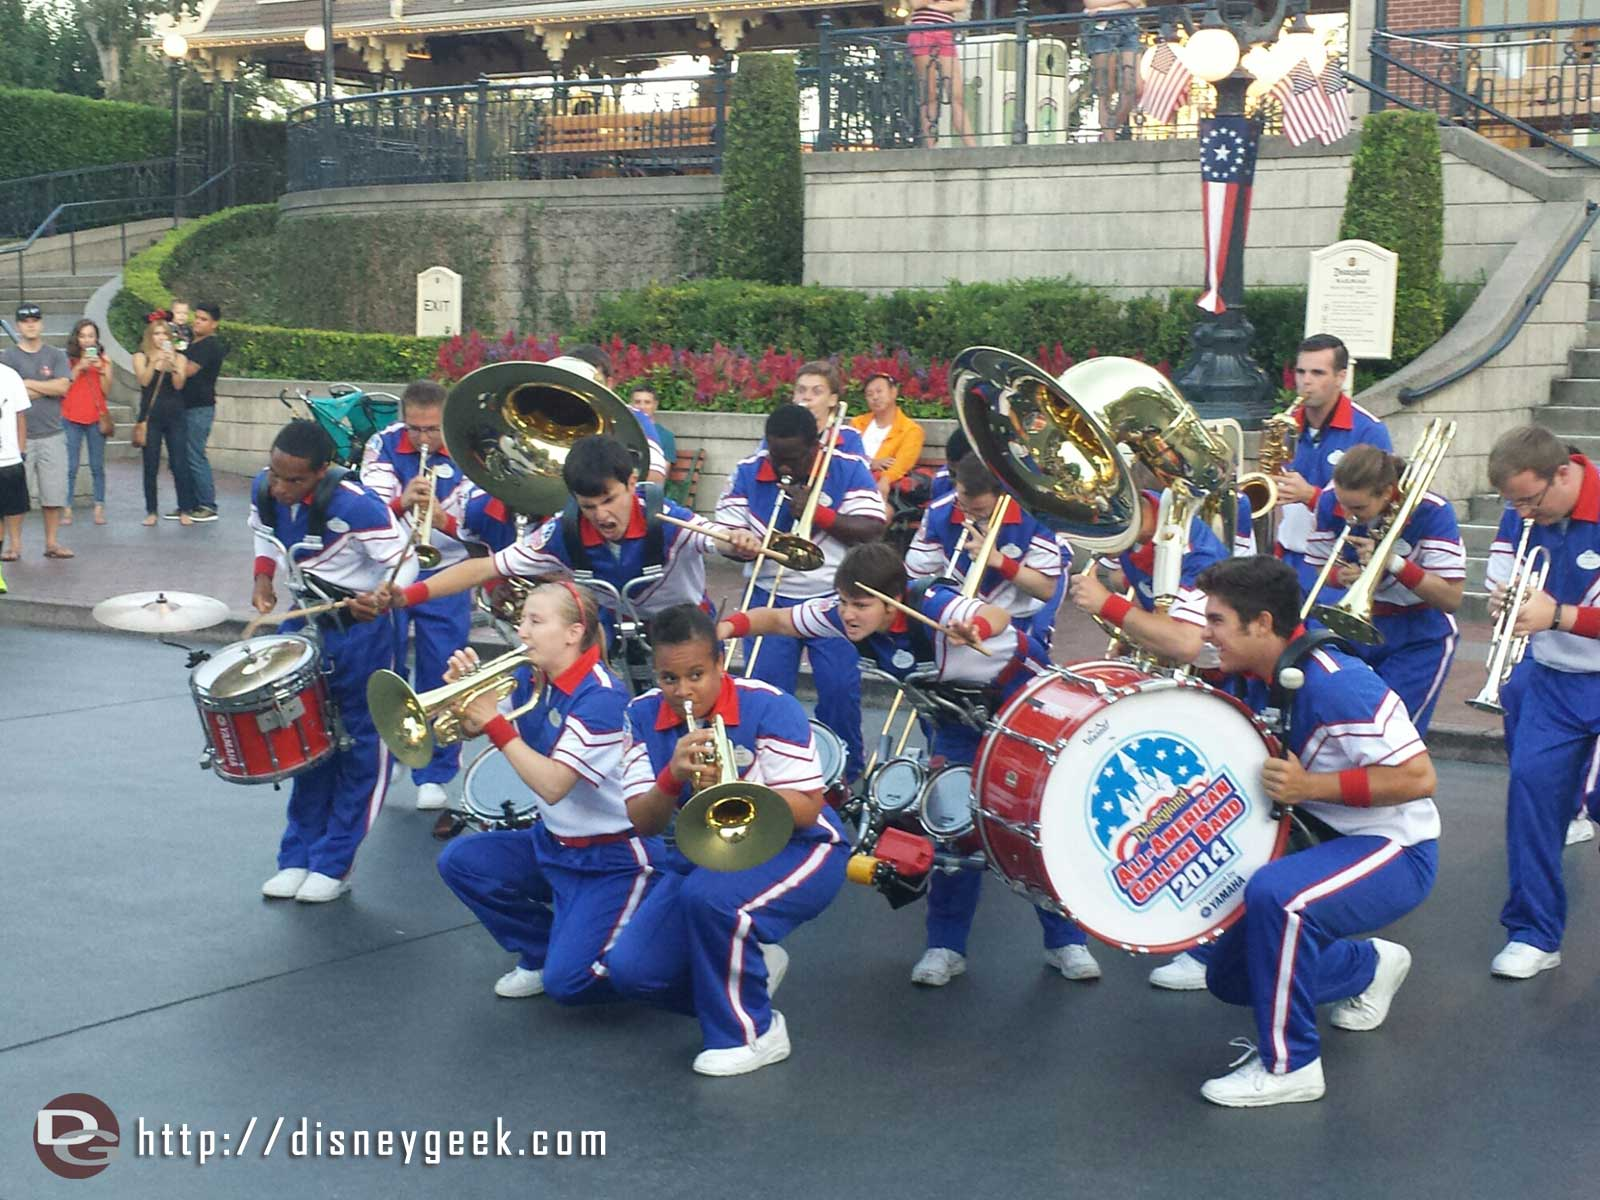 The 2014 #Disneyland All-American College Band performing in Town Square